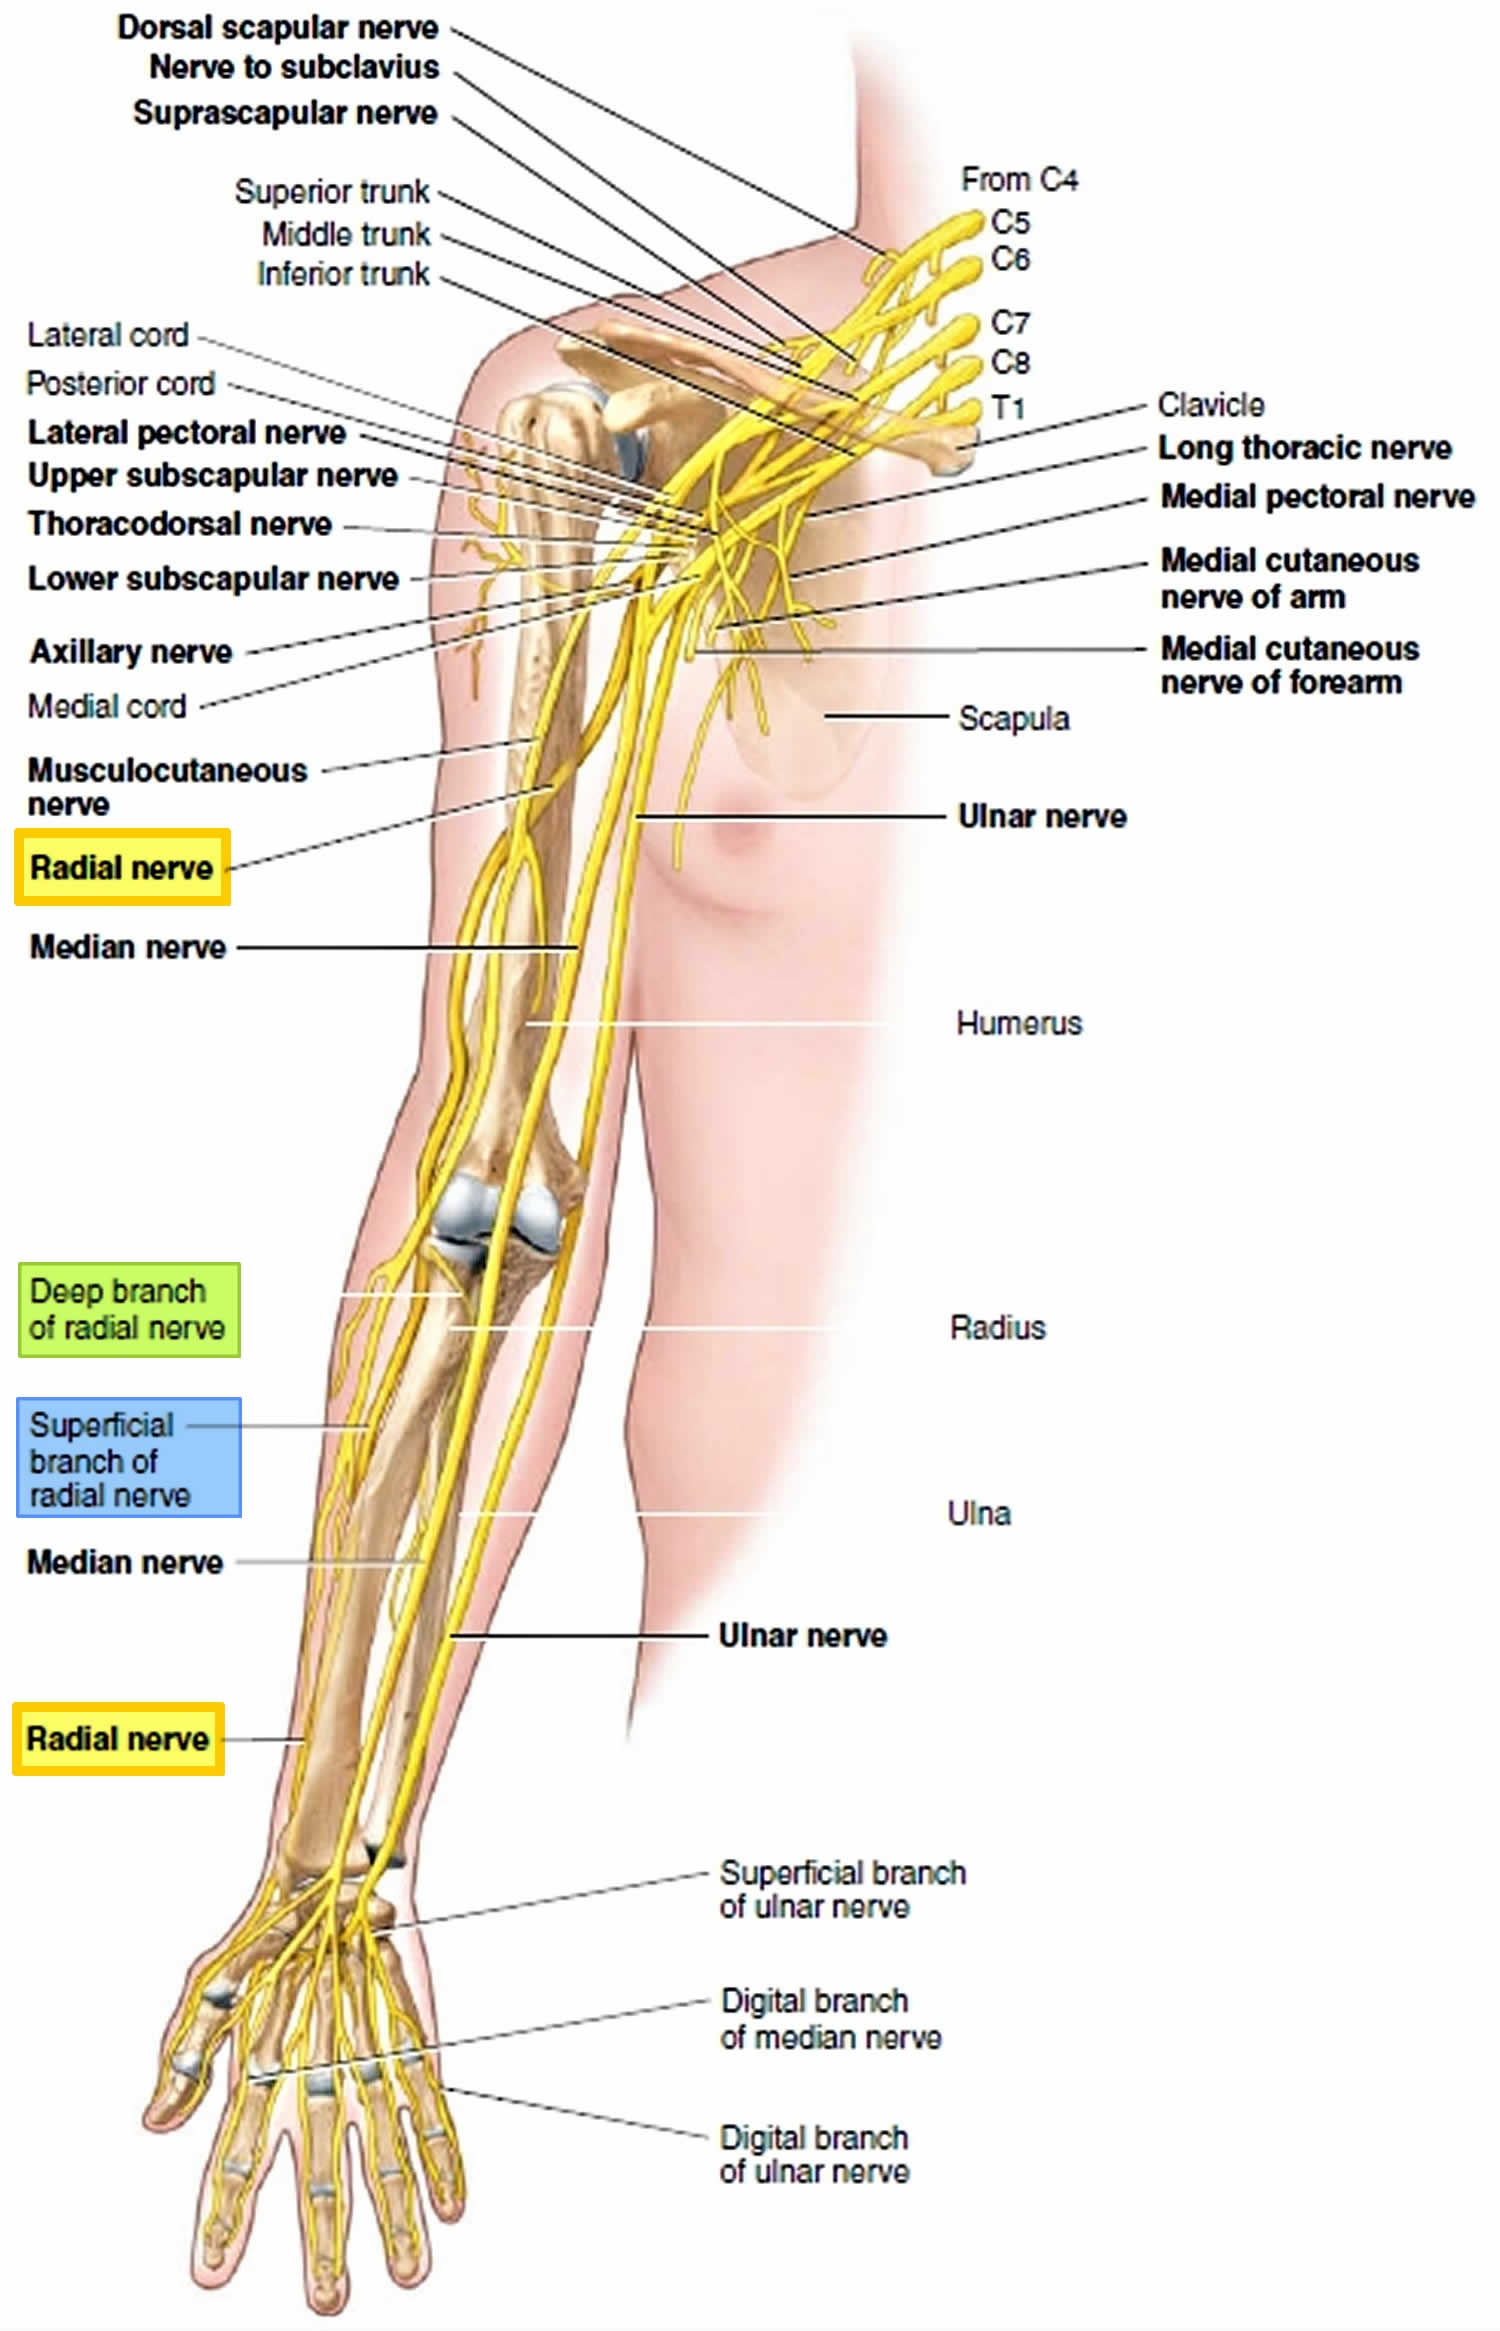 Radial Nerve Anatomy Radial Nerve Palsy And Radial Nerve Injury